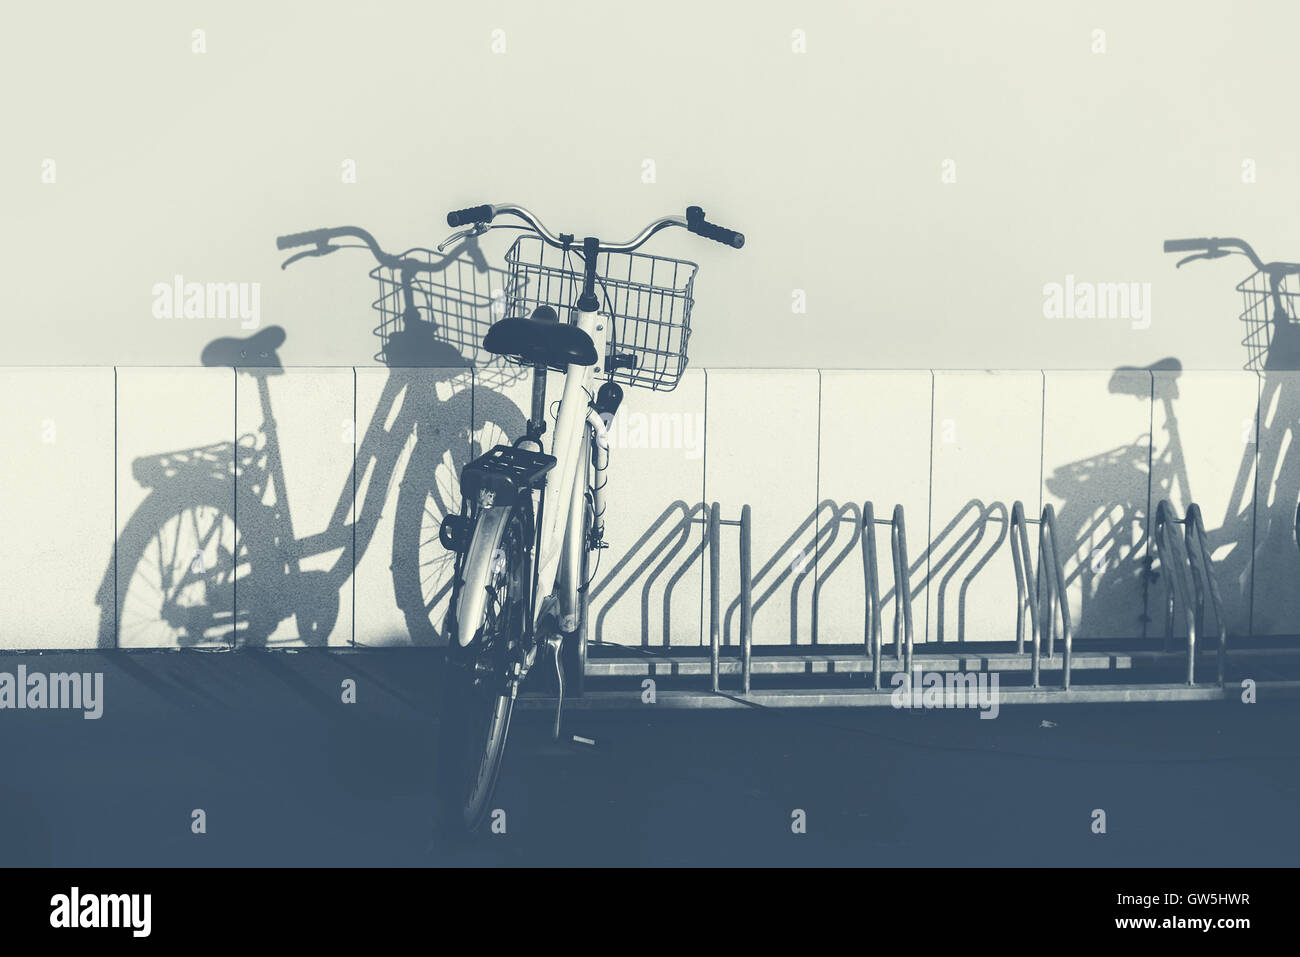 Bicycles and shadows, monochromatic image - Stock Image